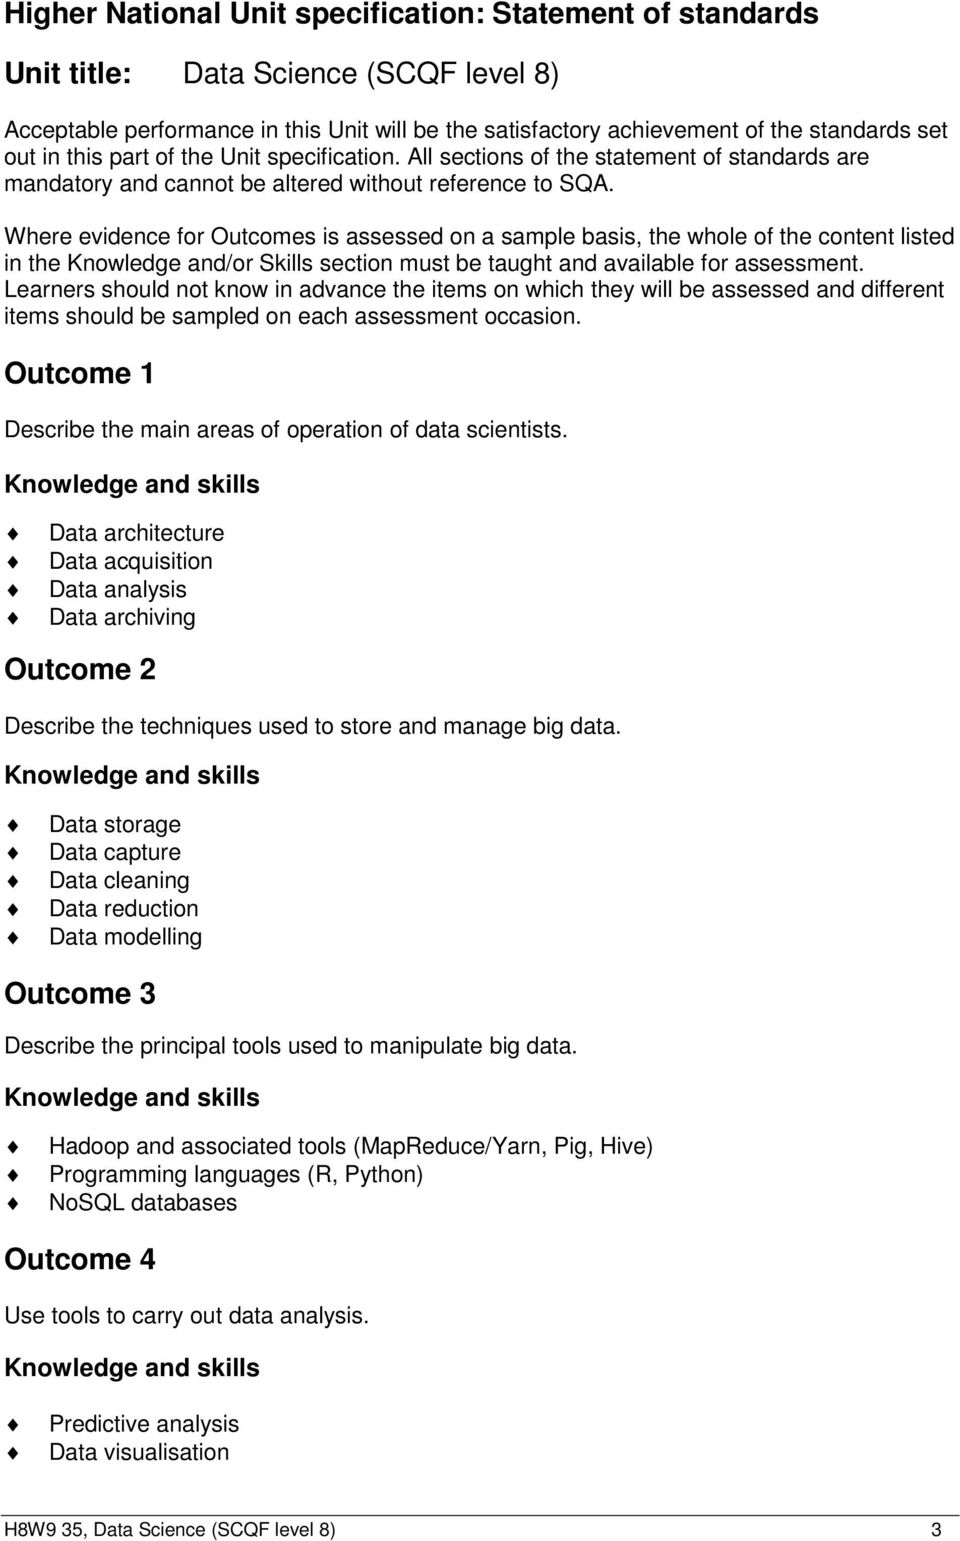 Where evidence for Outcomes is assessed on a sample basis, the whole of the content listed in the Knowledge and/or Skills section must be taught and available for assessment.